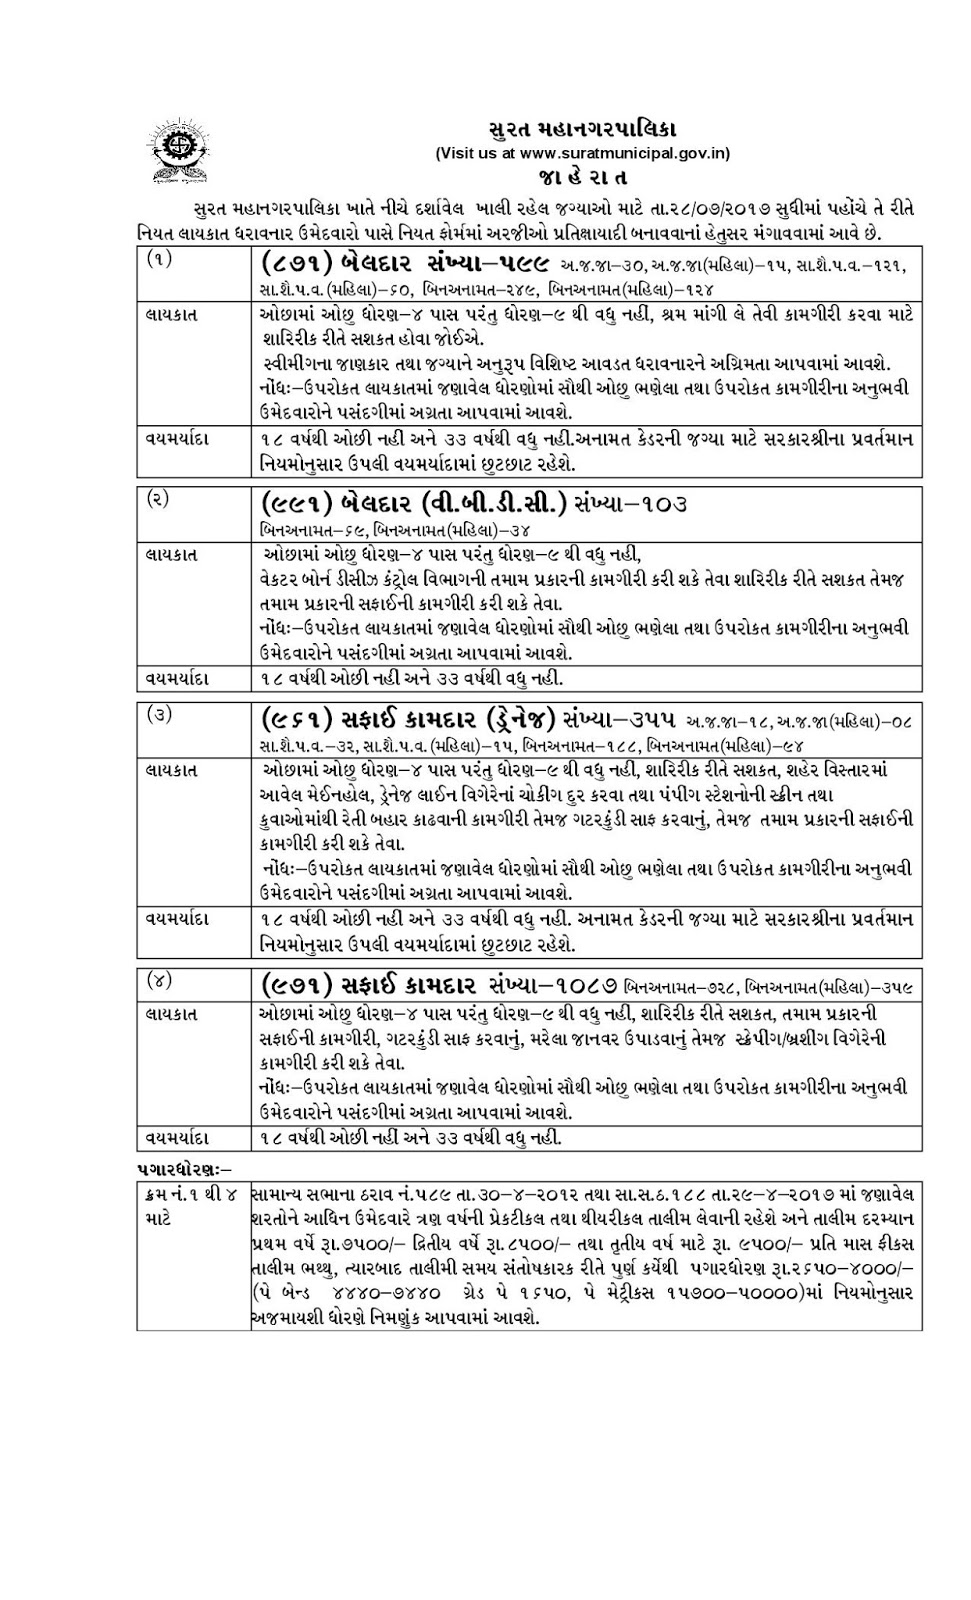 Gujarat education website surat municipal corporation smc 2144 send your application to given address to office superintendentcentral officeroom no751st floor surat municipal corporationmuglisarasurat thecheapjerseys Image collections